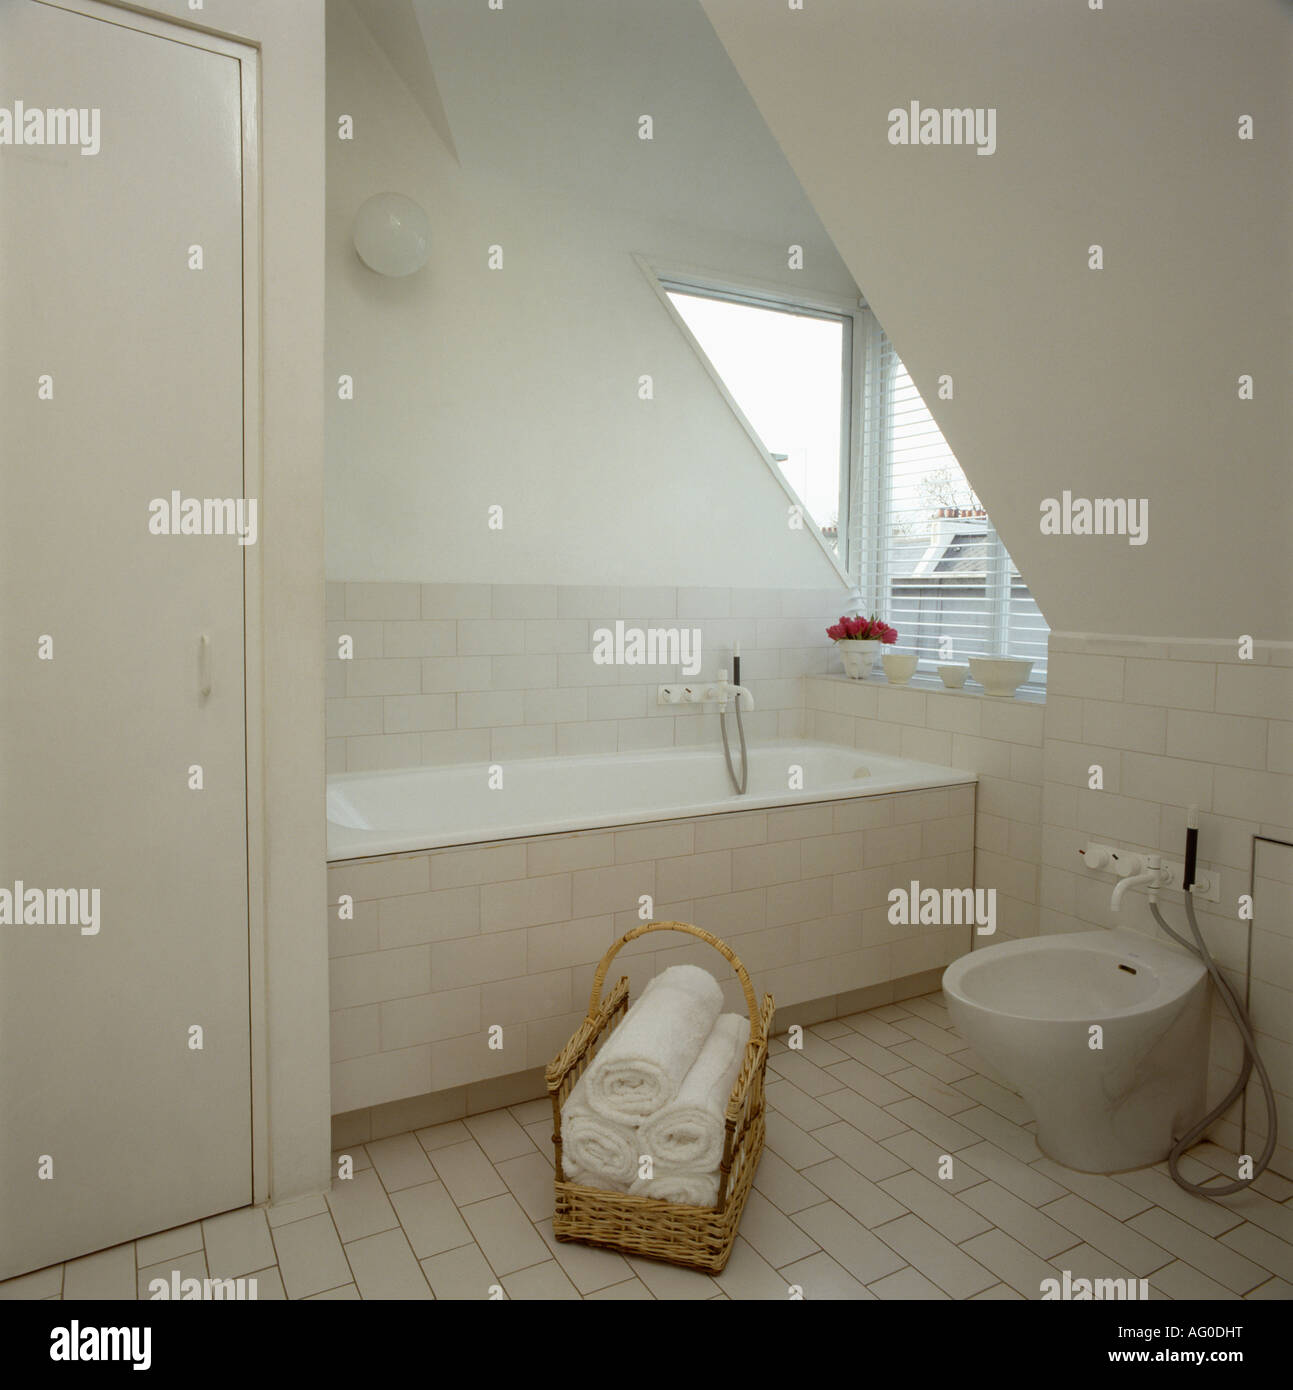 White Towels In Basket On Floor Of Modern White Attic Bathroom With Stock Photo Alamy